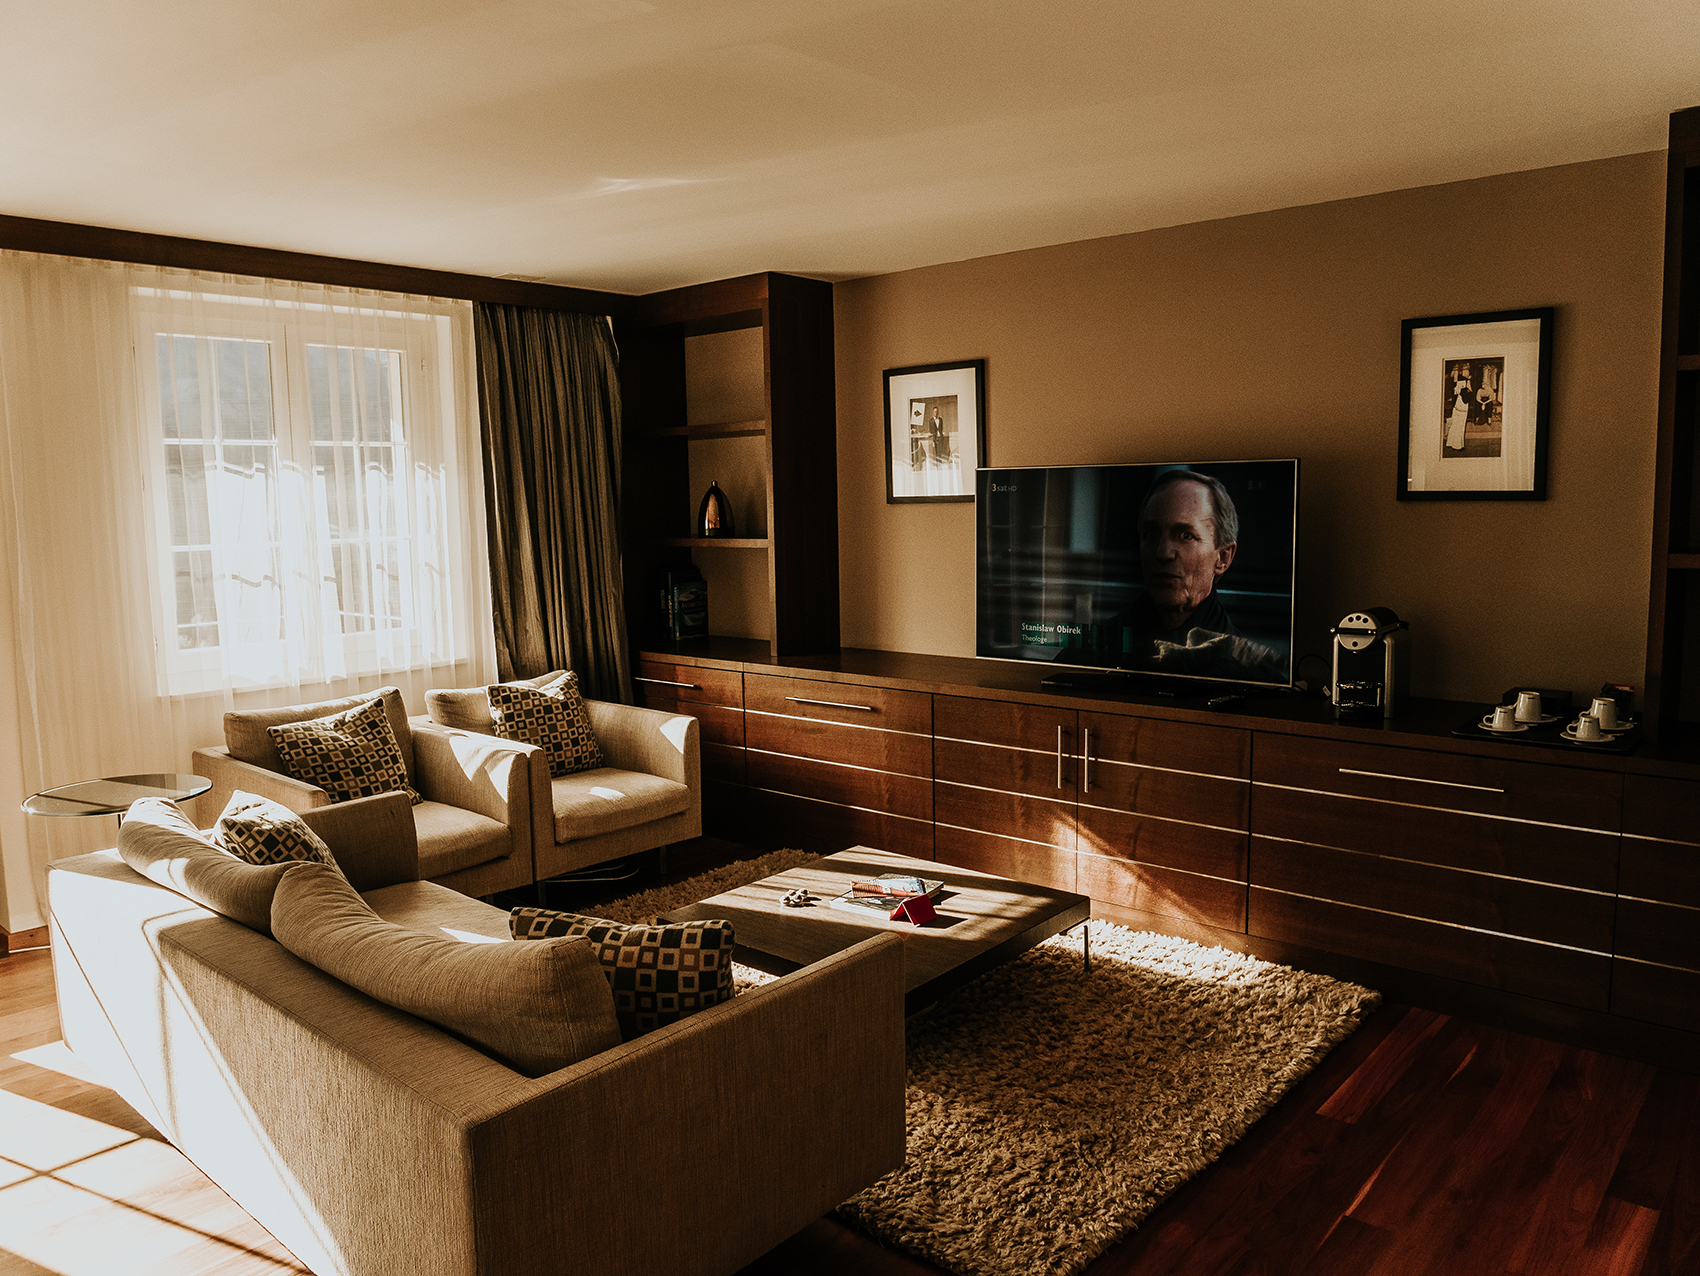 Suite at The Cambrian - Living room with TV